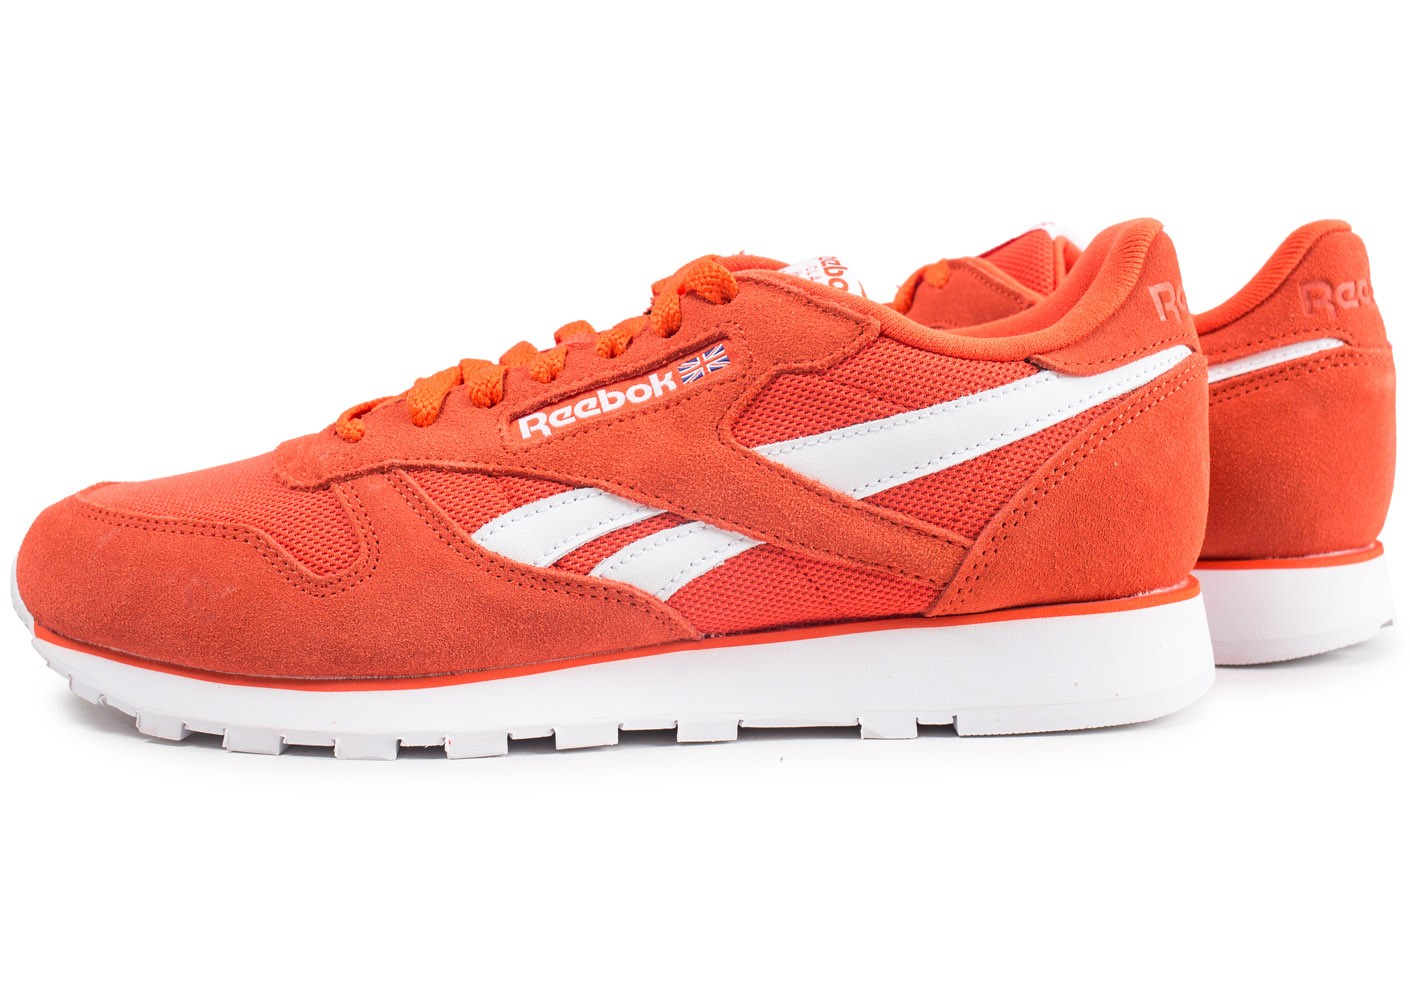 lowest discount amazing price to buy Reebok Classic Leather orange - Chaussures Baskets homme - Chausport